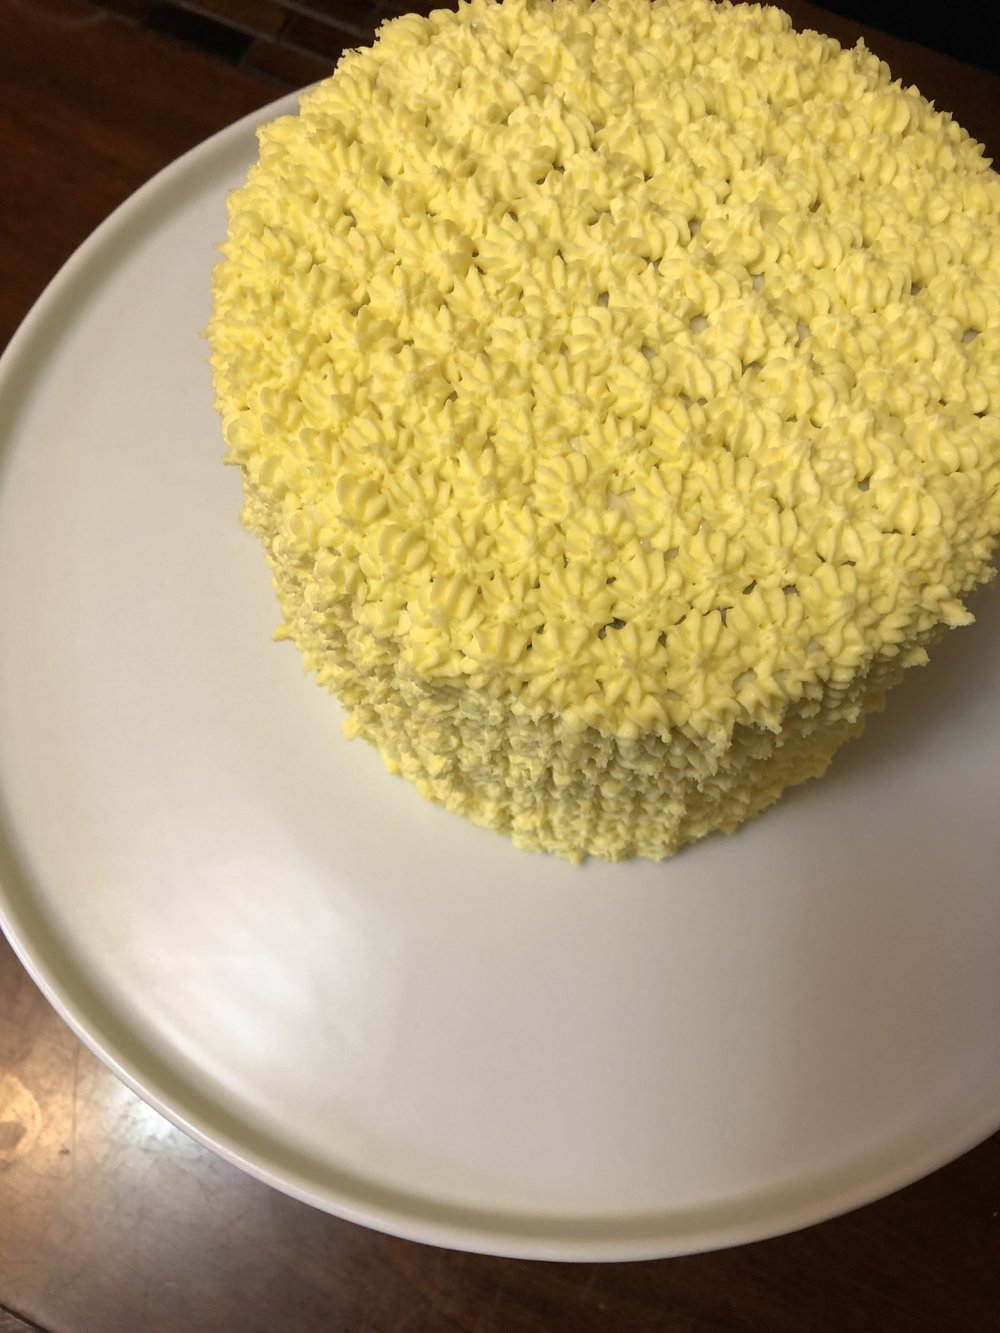 Yellow icing piped in little flowers to give the outside of the cake dimension to look like a pineapple!